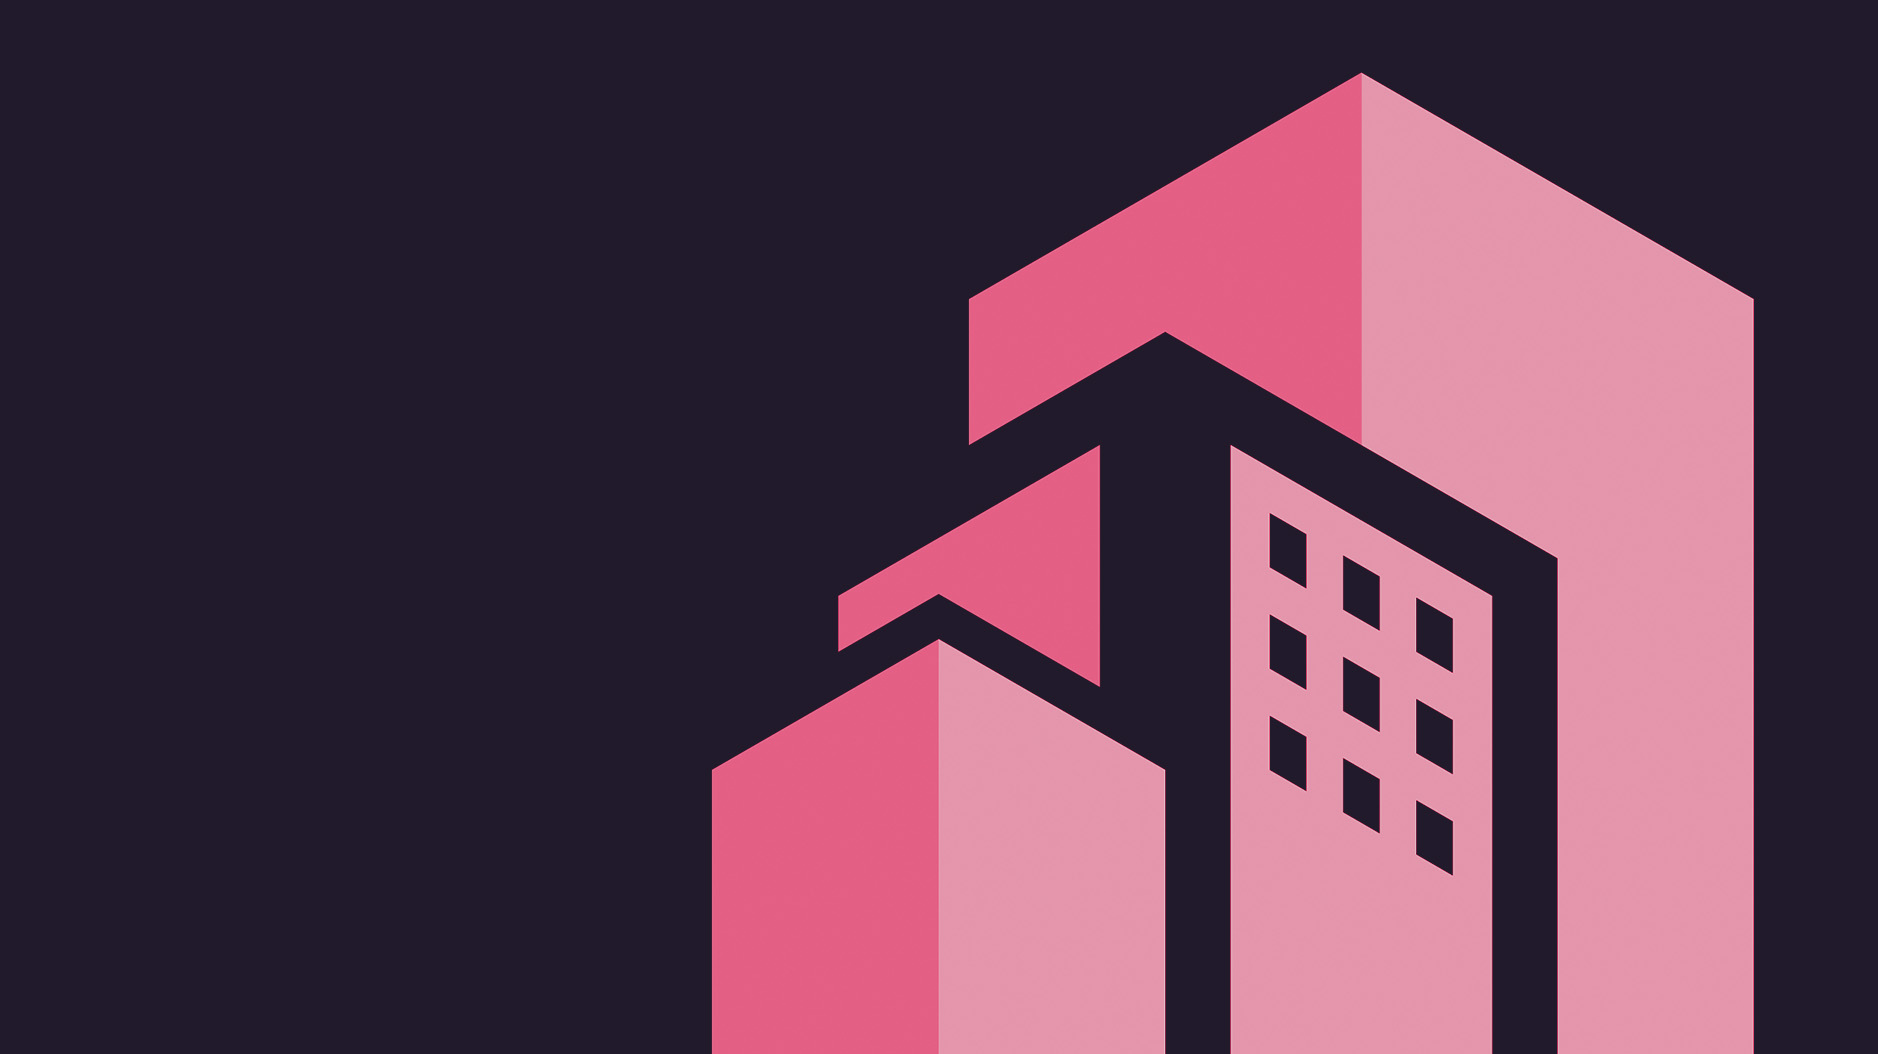 Real Estate sector saves time and money (an average of 65%) by digitising with Docuten